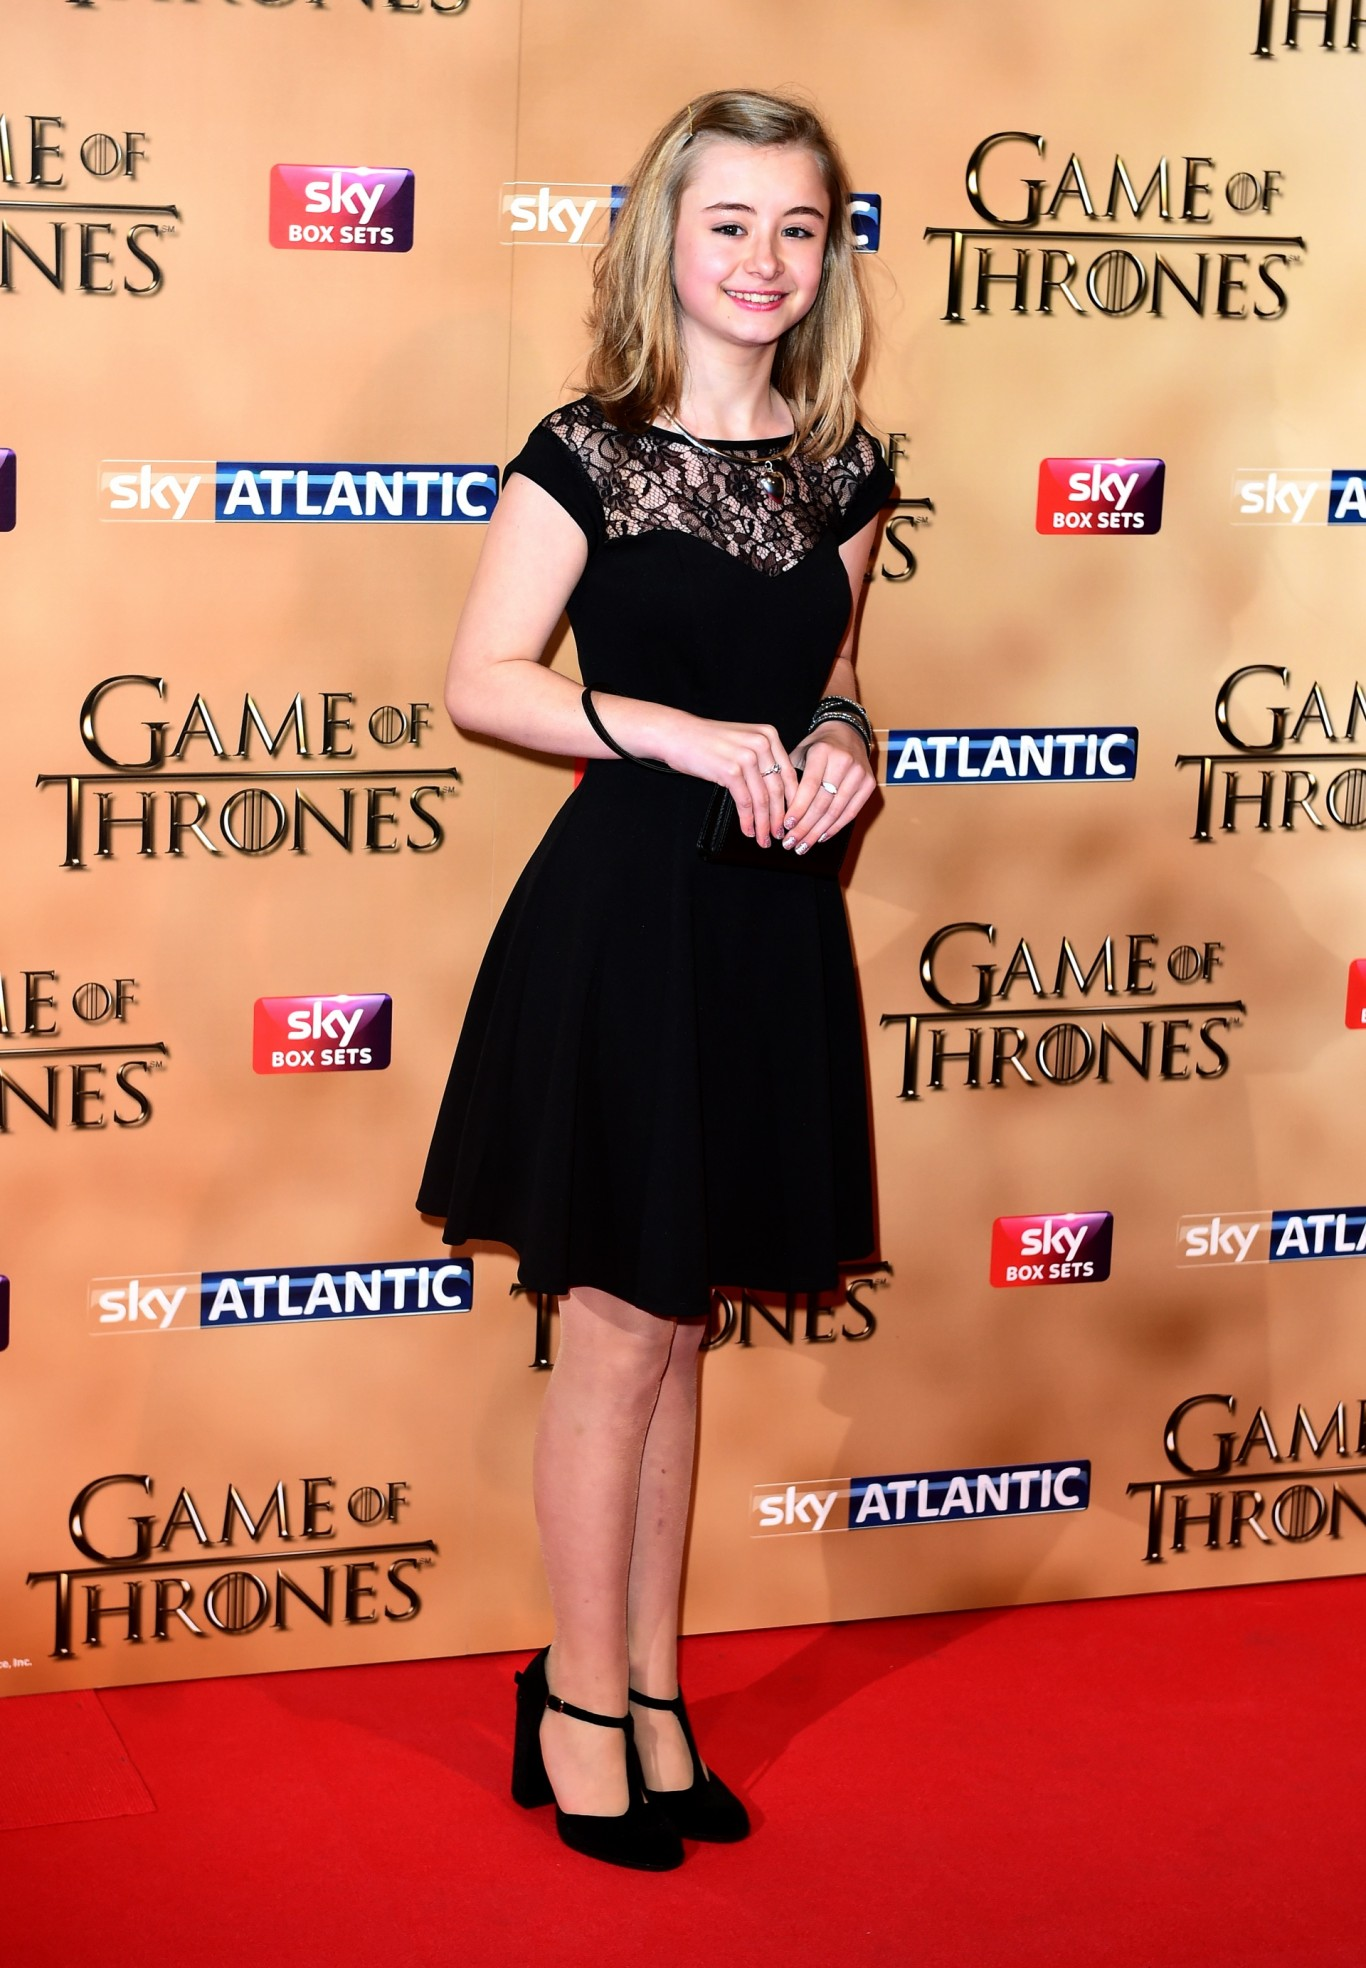 Kerry Ingram at the event